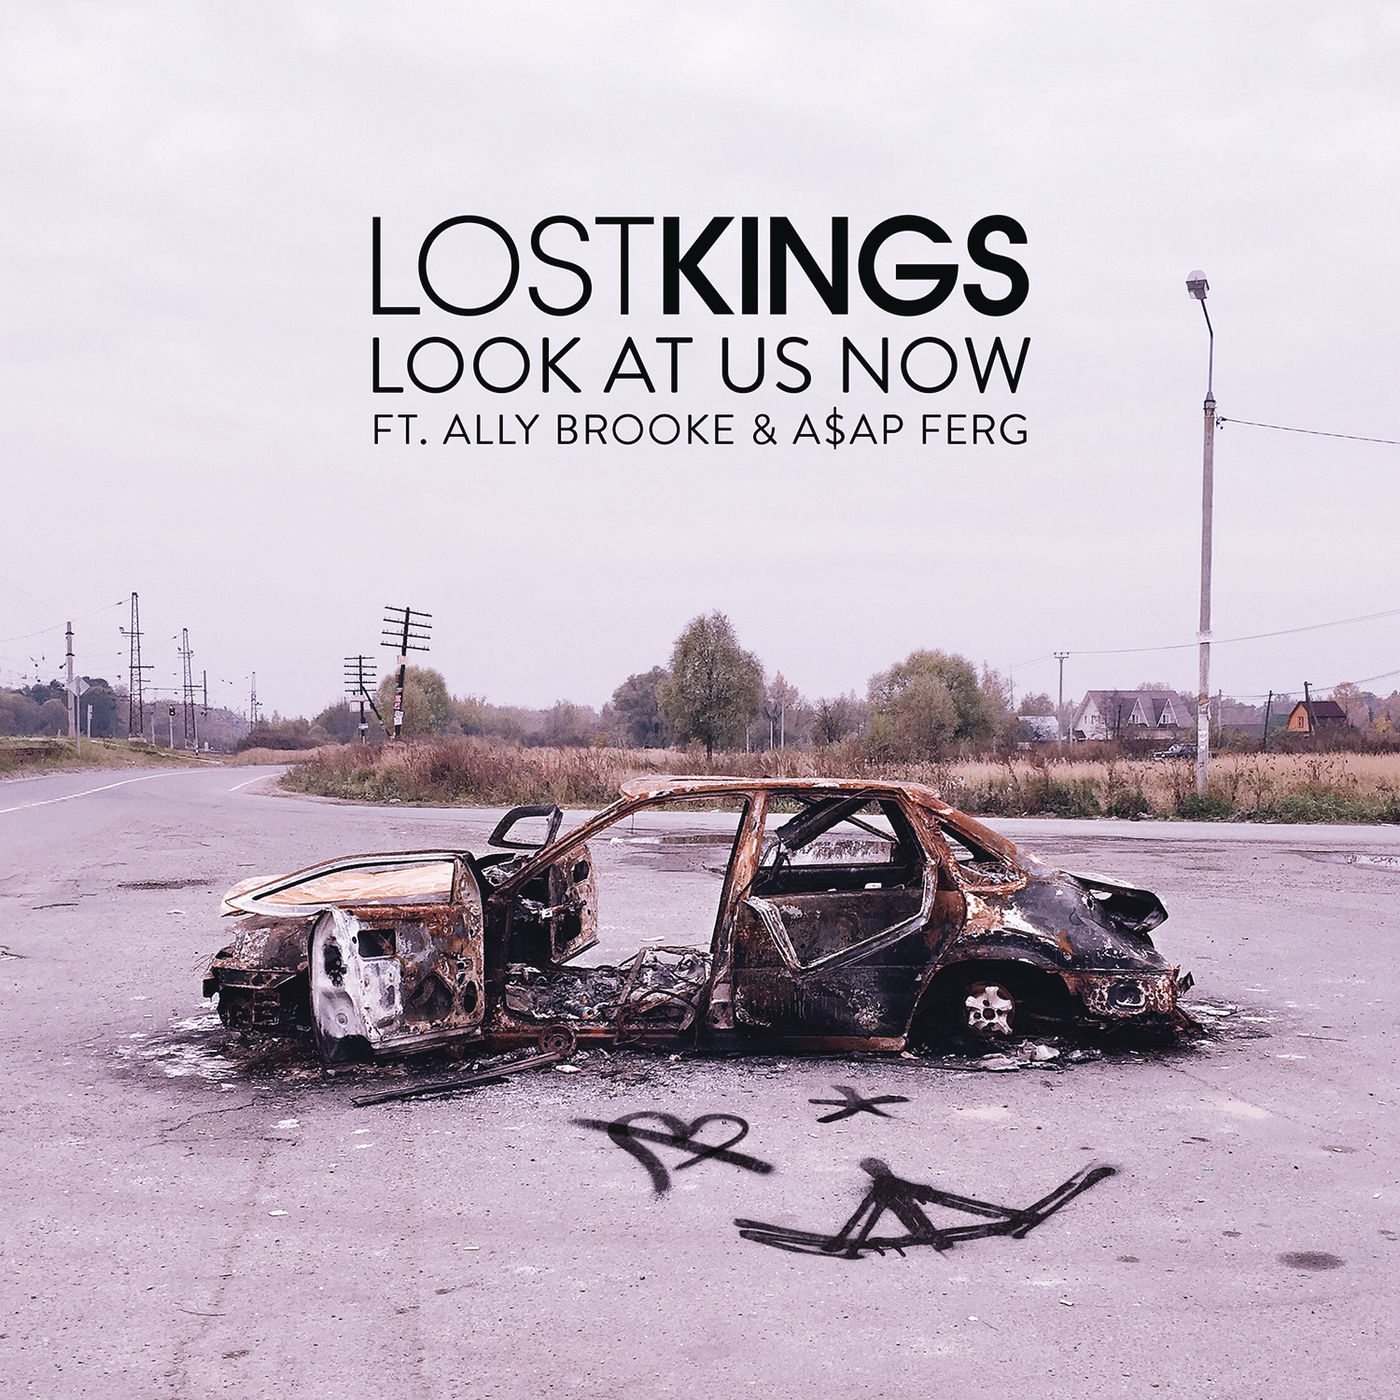 Lost Kings - Look At Us Now (feat. Ally Brooke & A$AP Ferg) - Single